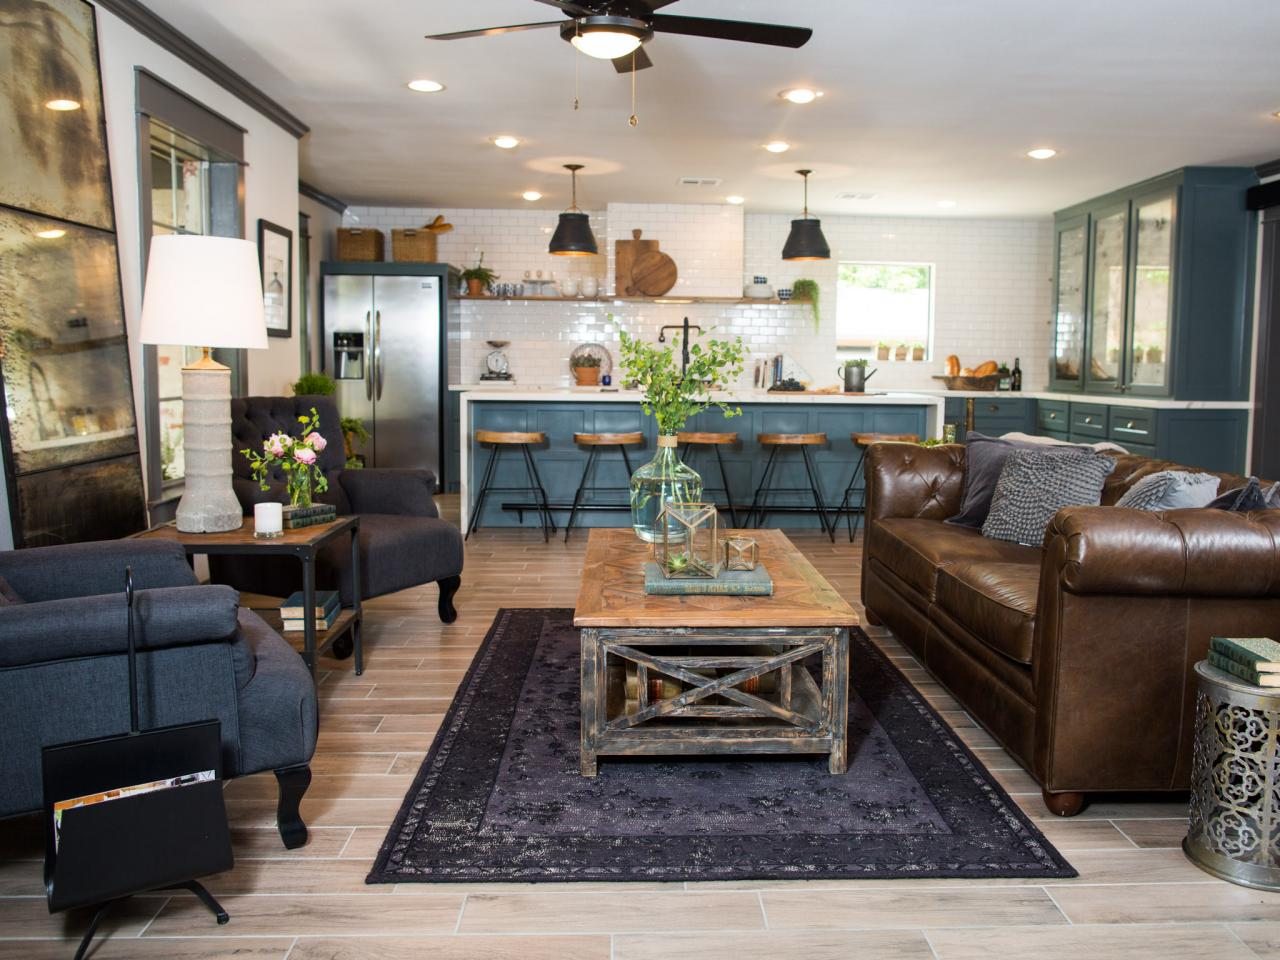 Photos hgtv 39 s fixer upper with chip and joanna gaines hgtv Magnolia homes com